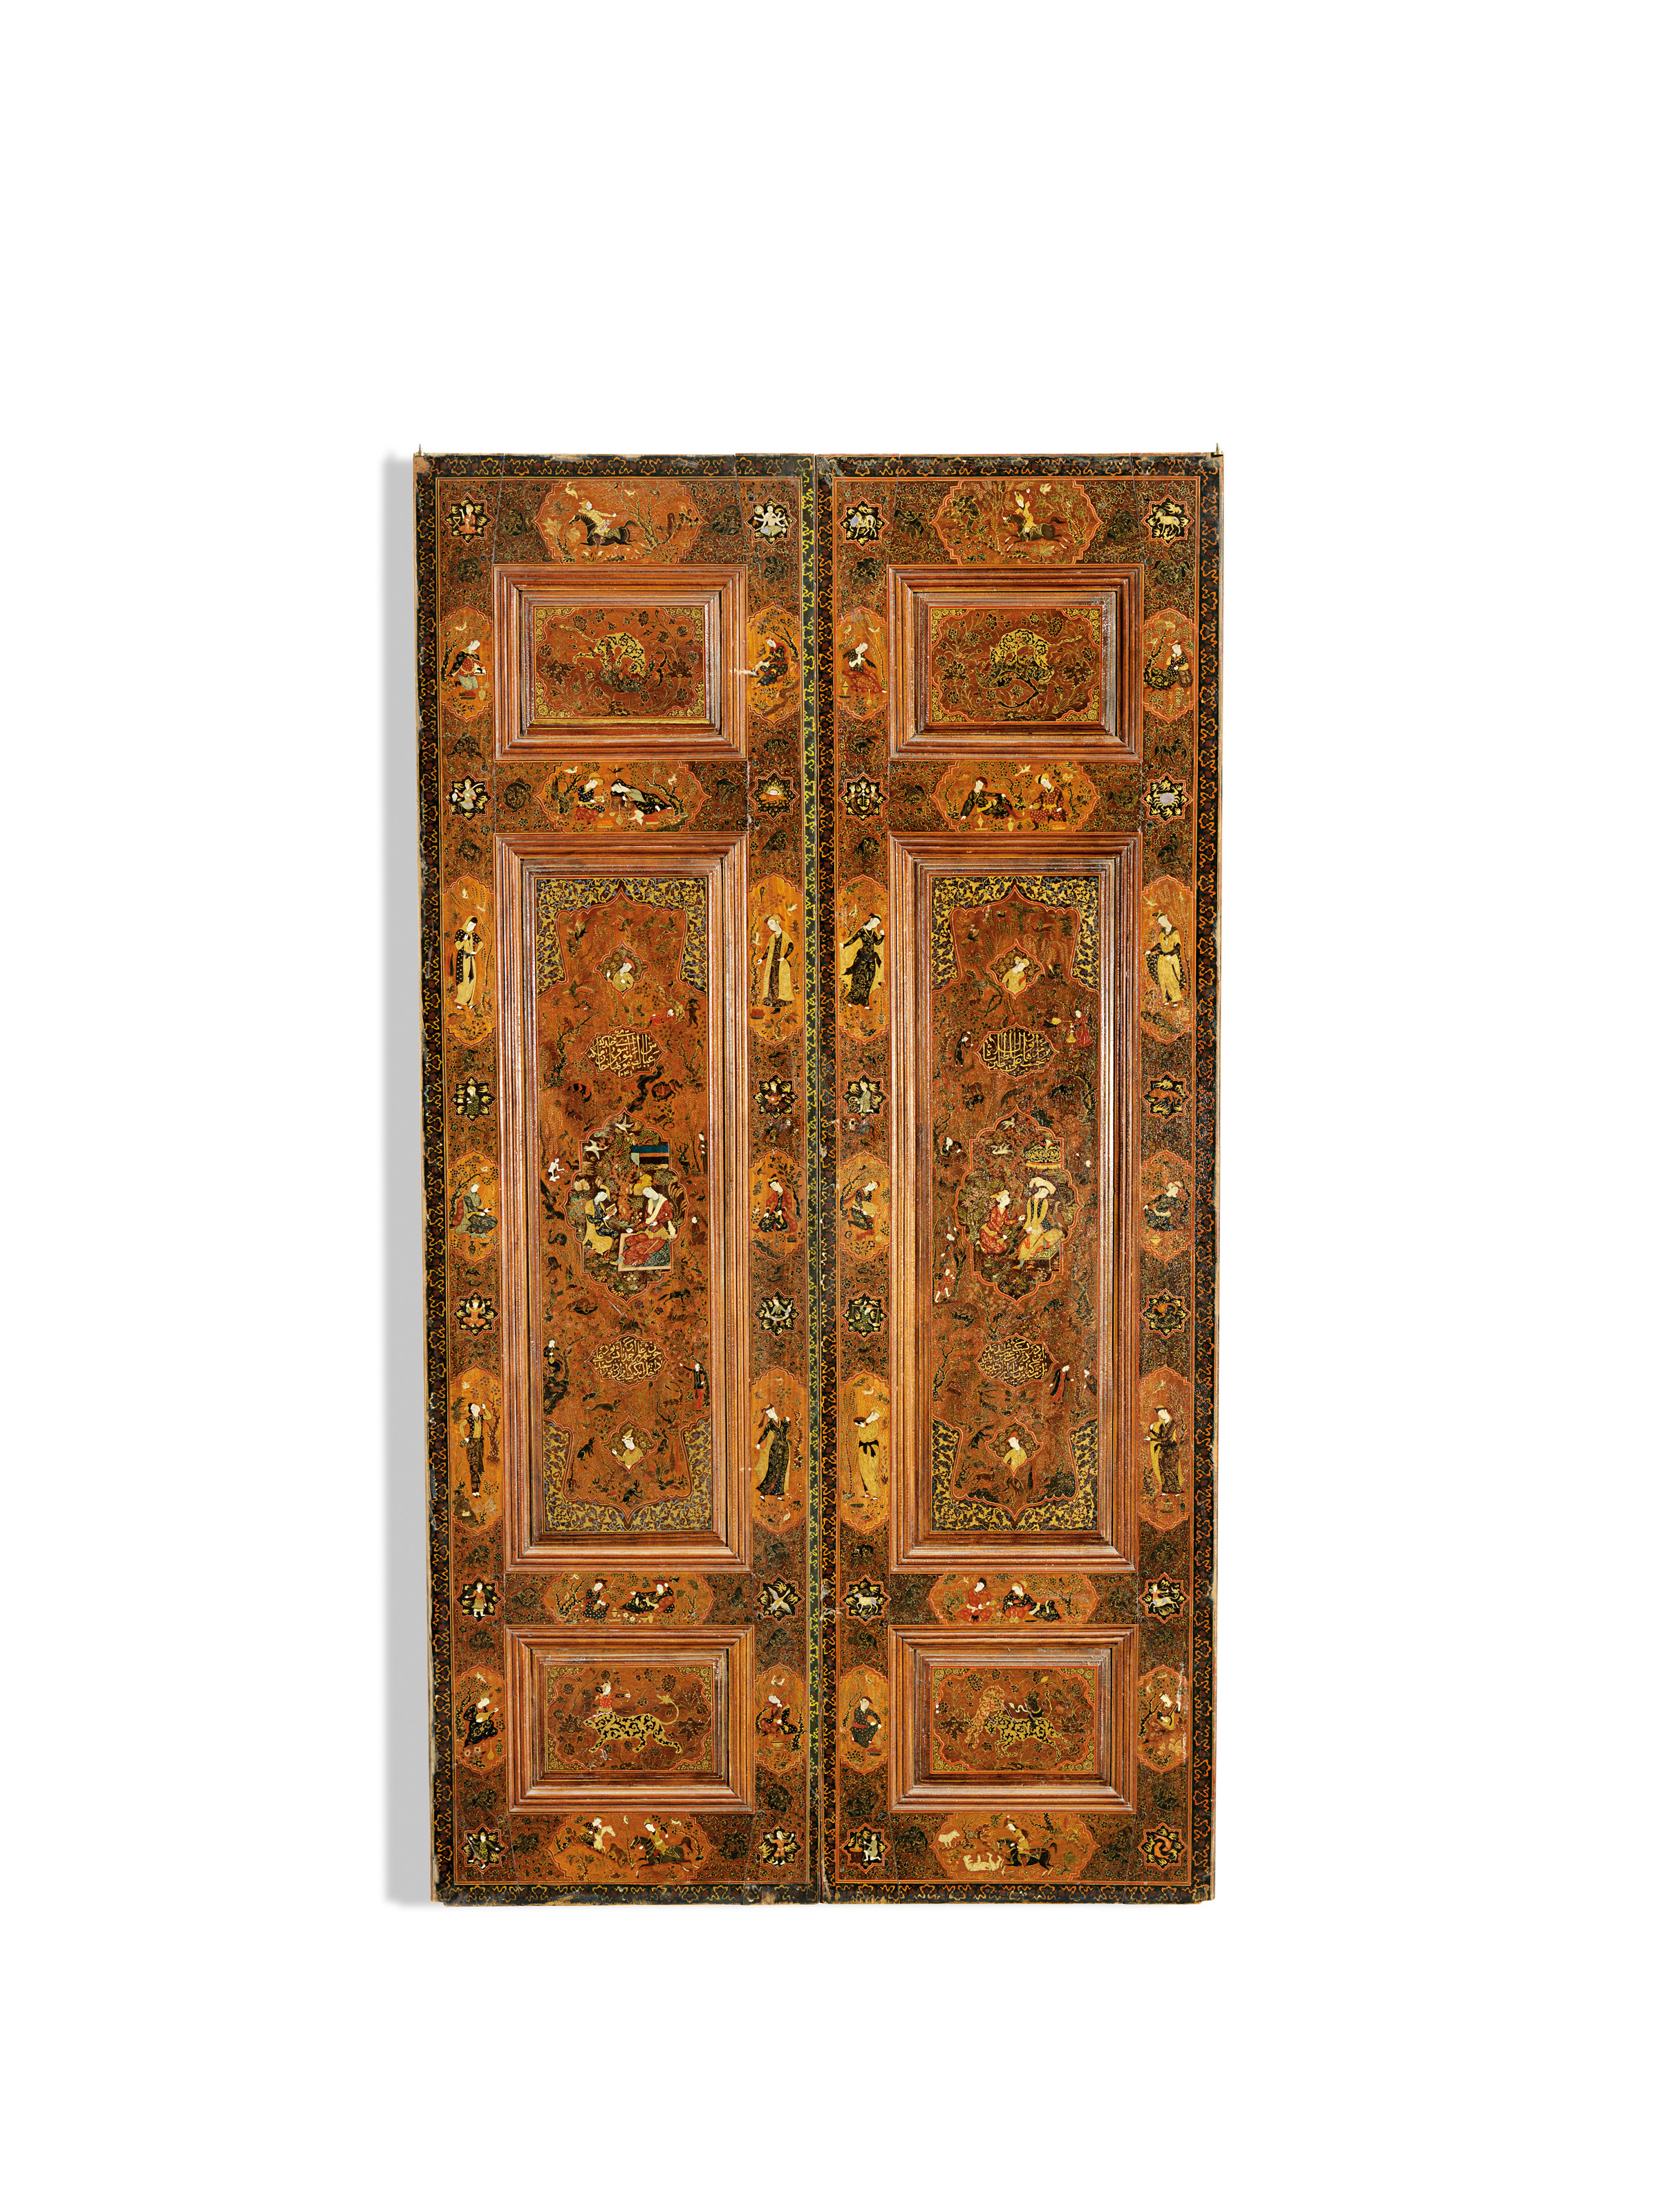 A PAIR OF QAJAR PAINTED AND GESSO APPLIED WOODEN DOORS